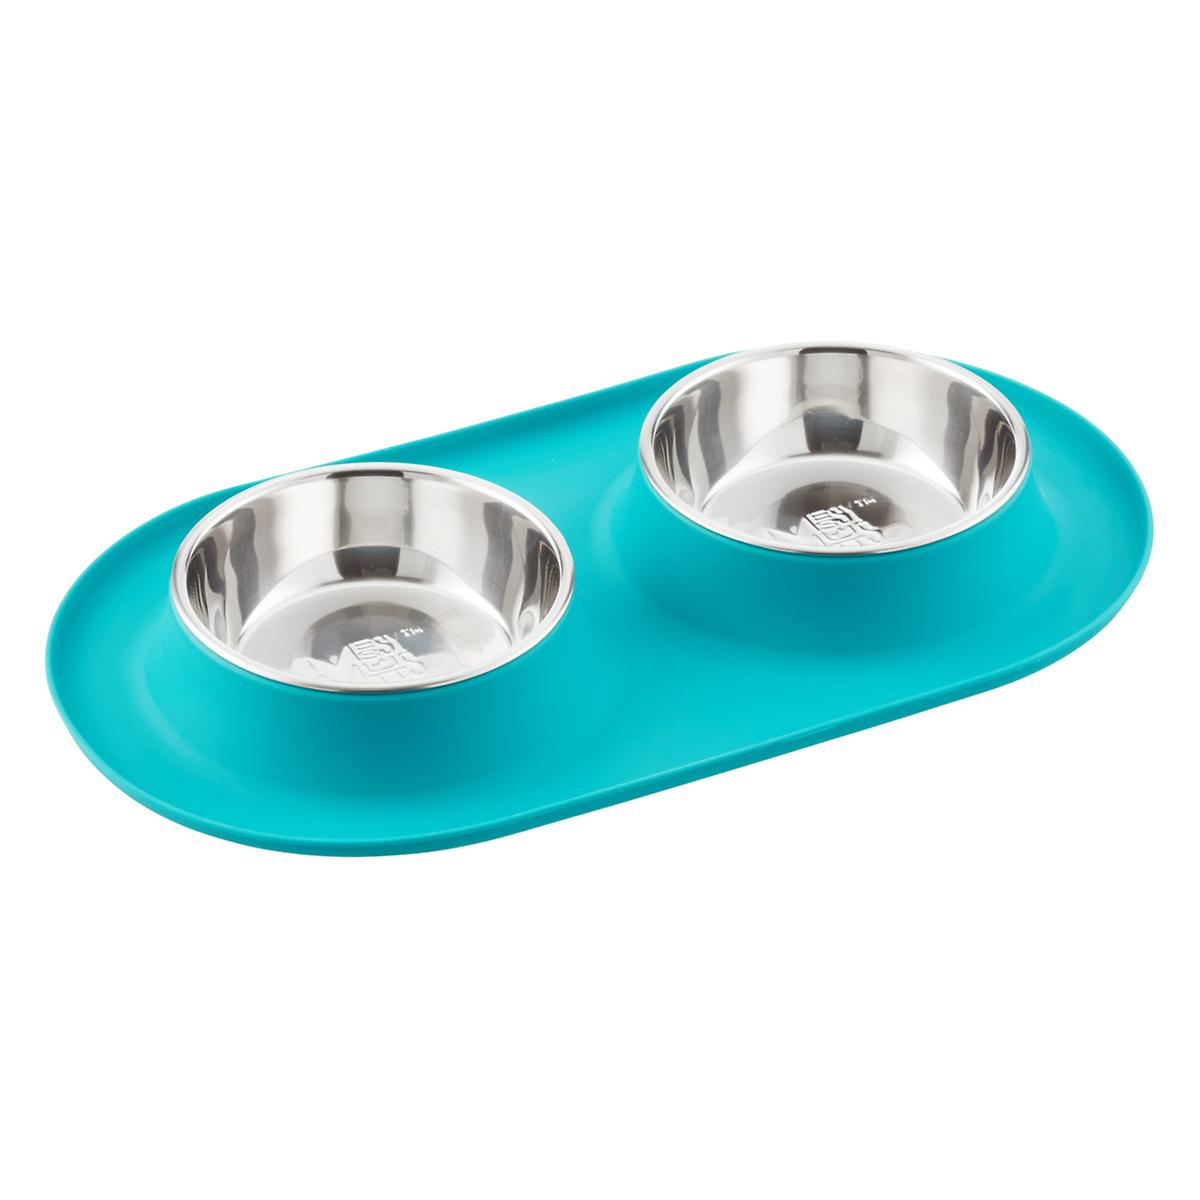 Messy Mutts Medium Teal Double Silicone Dog Feeder